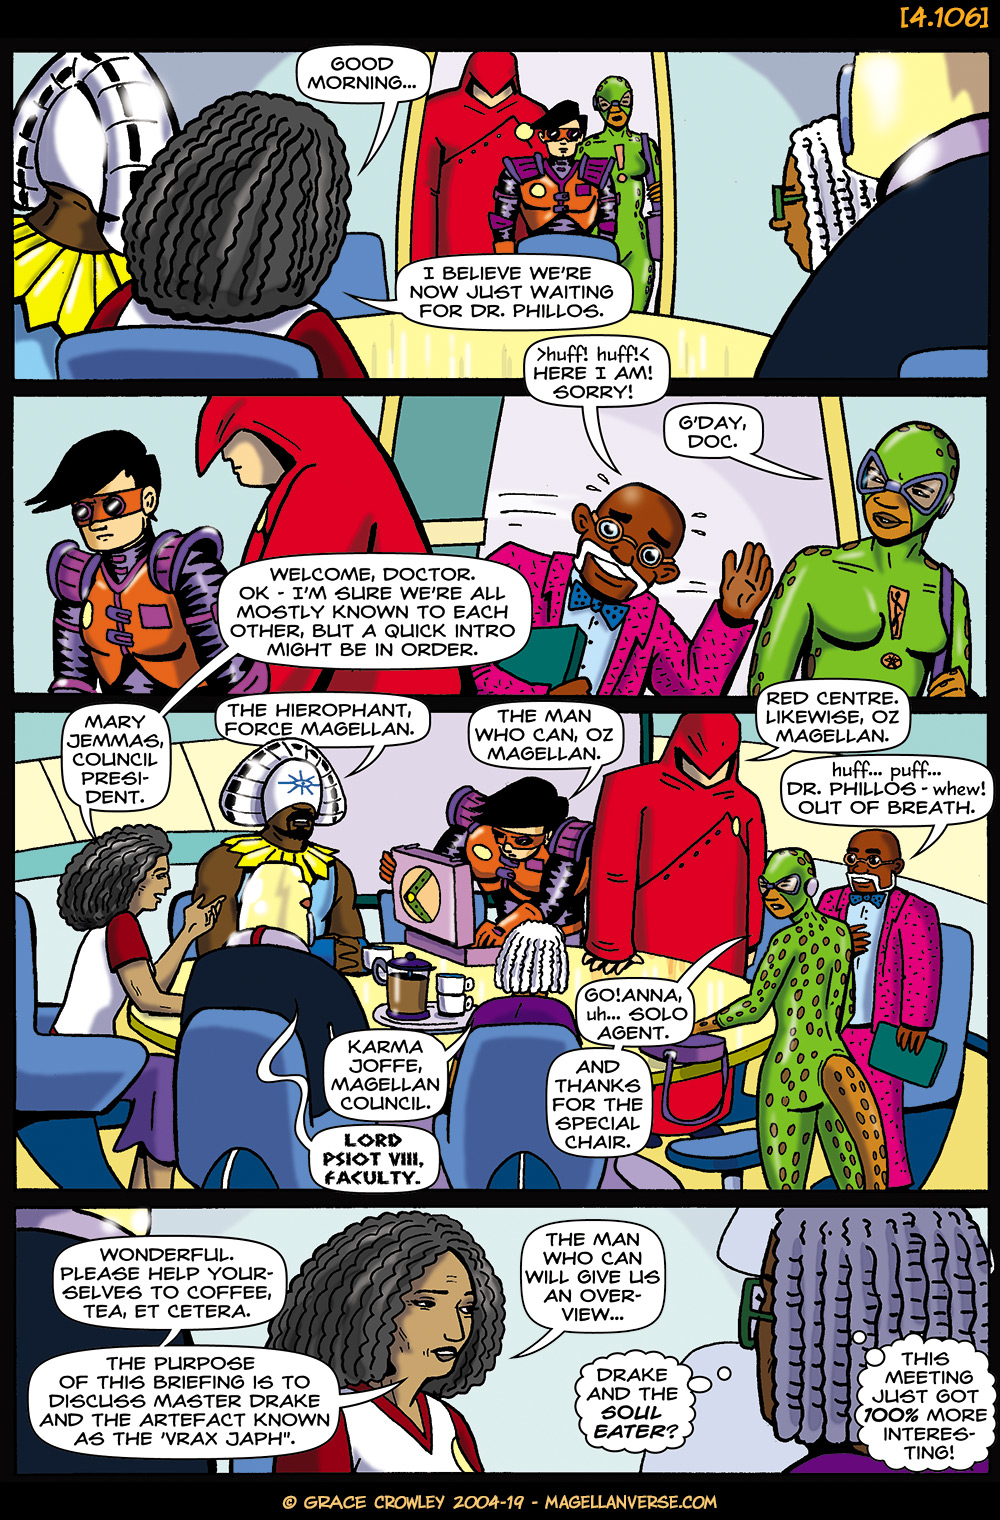 Page 4.106